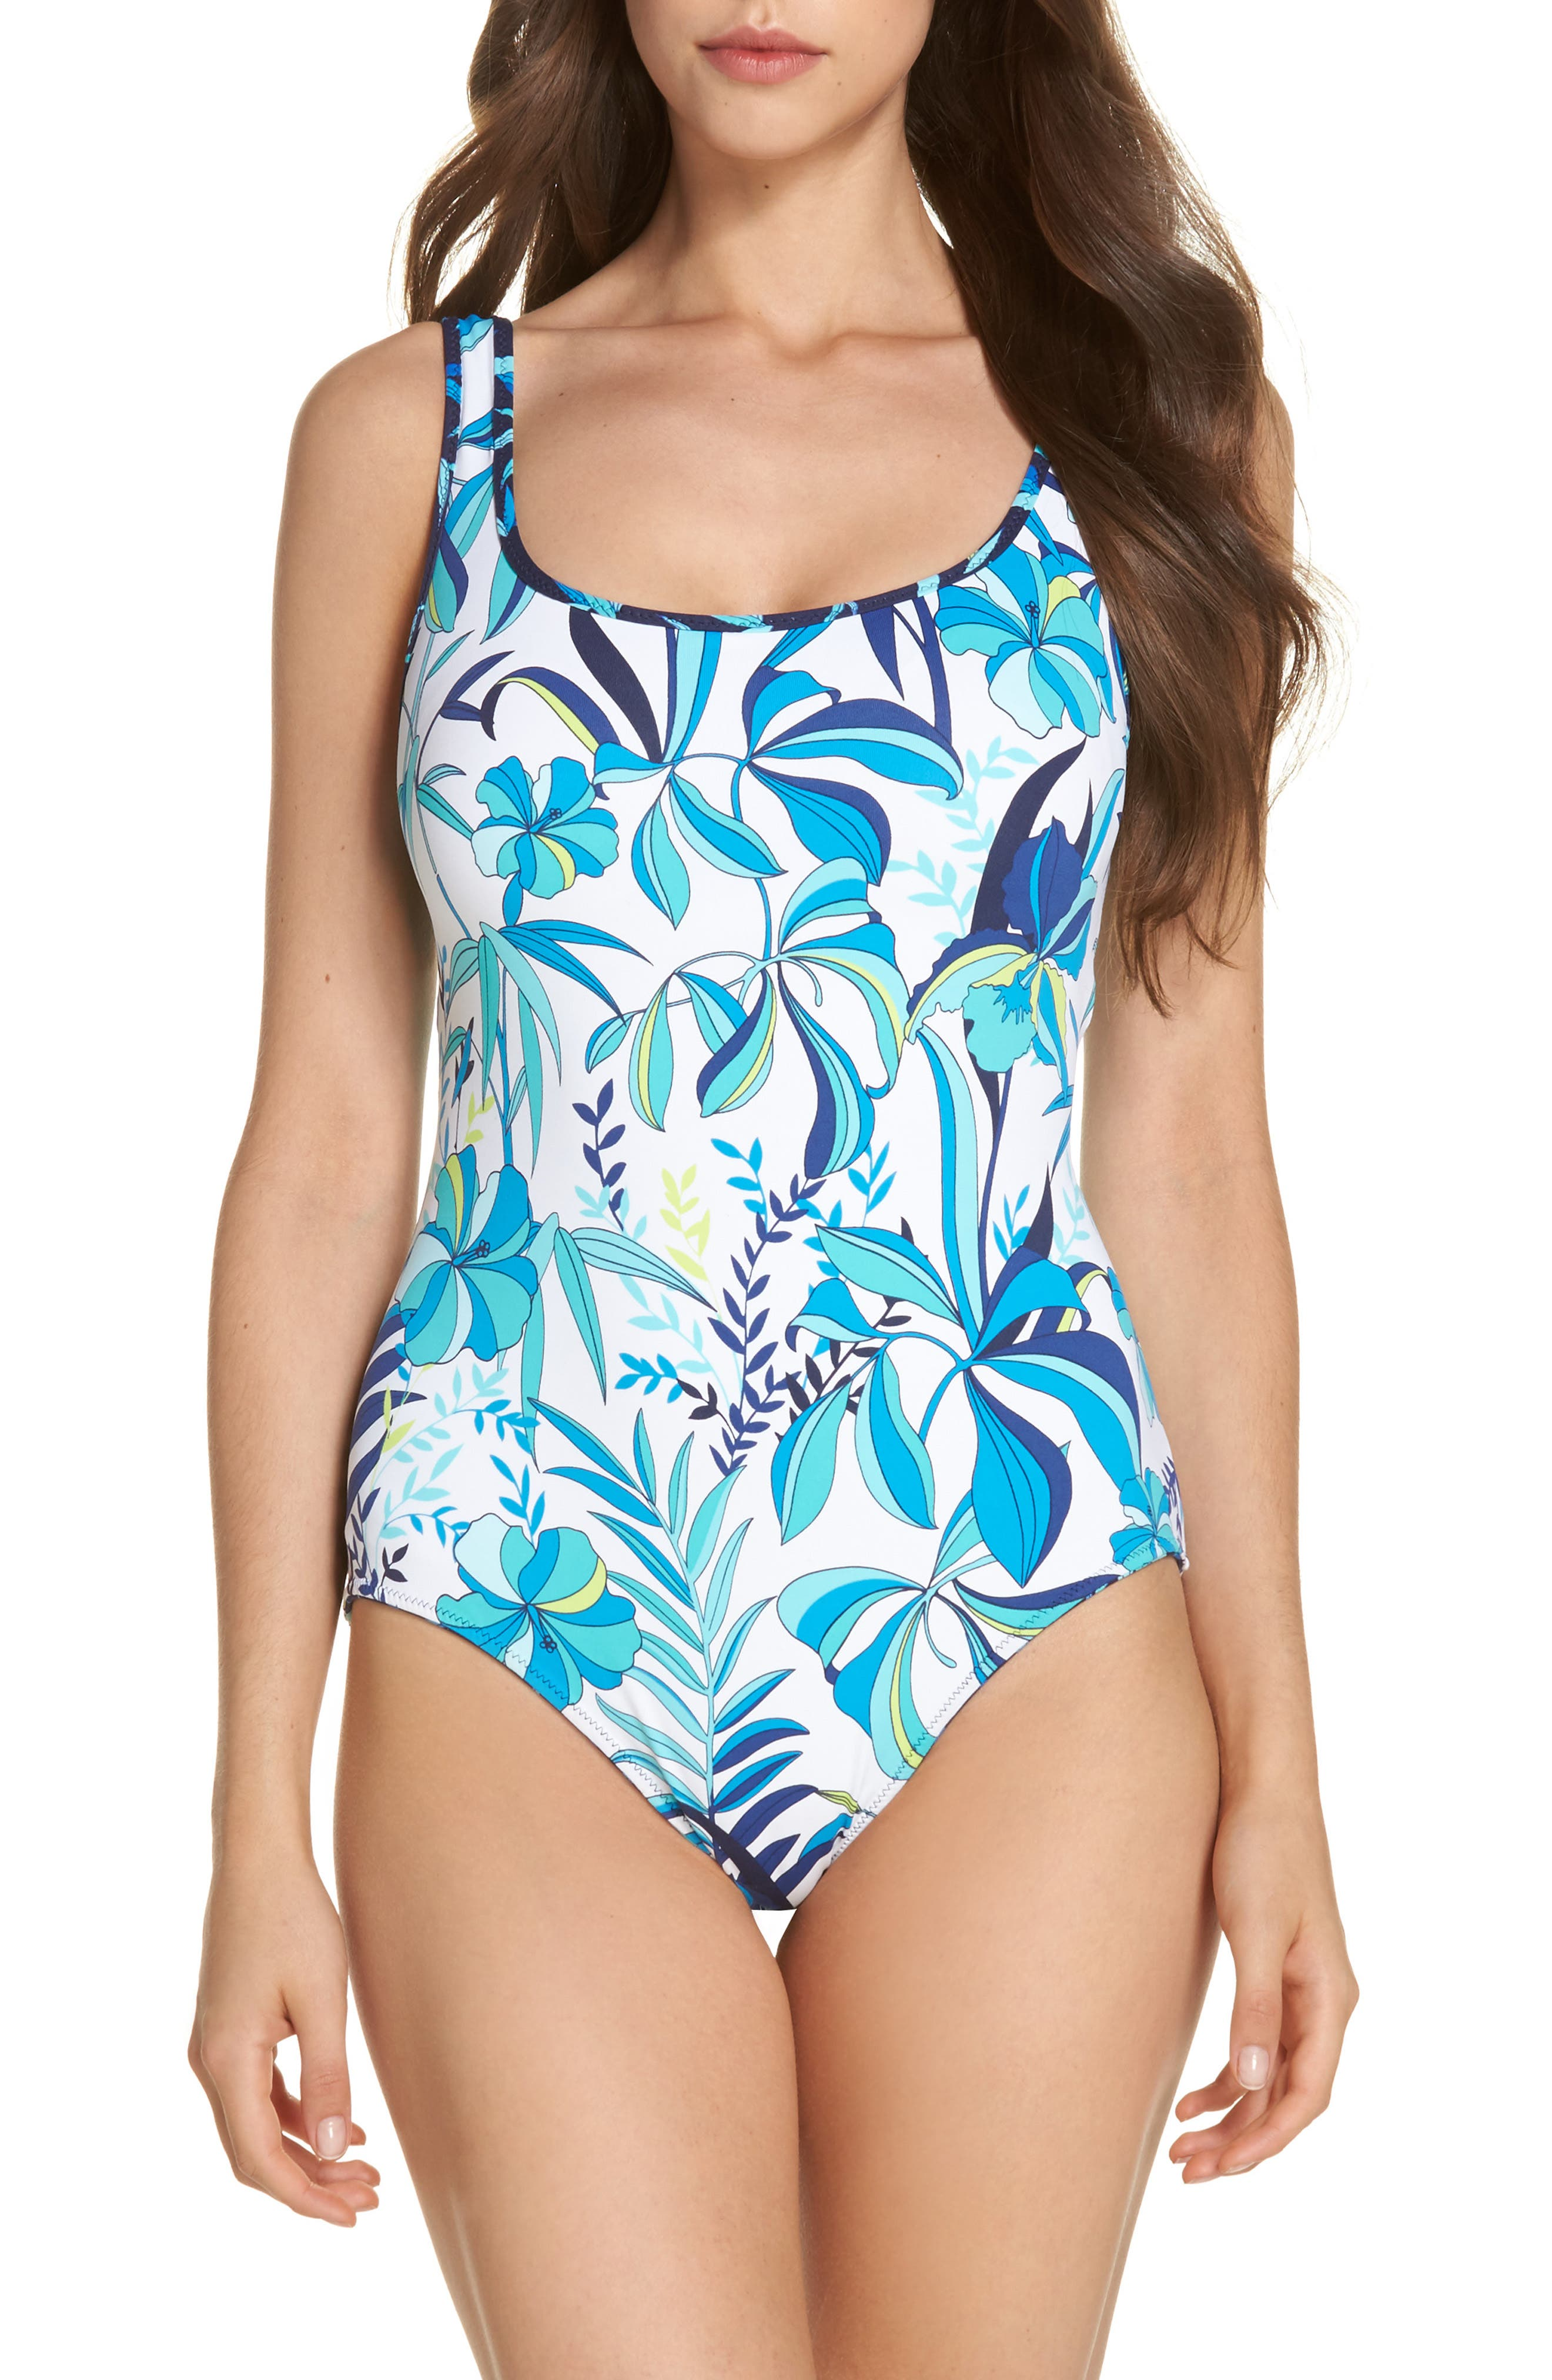 Tropical Swirl Reversible One-Piece Swimsuit,                             Alternate thumbnail 2, color,                             Blue/ White